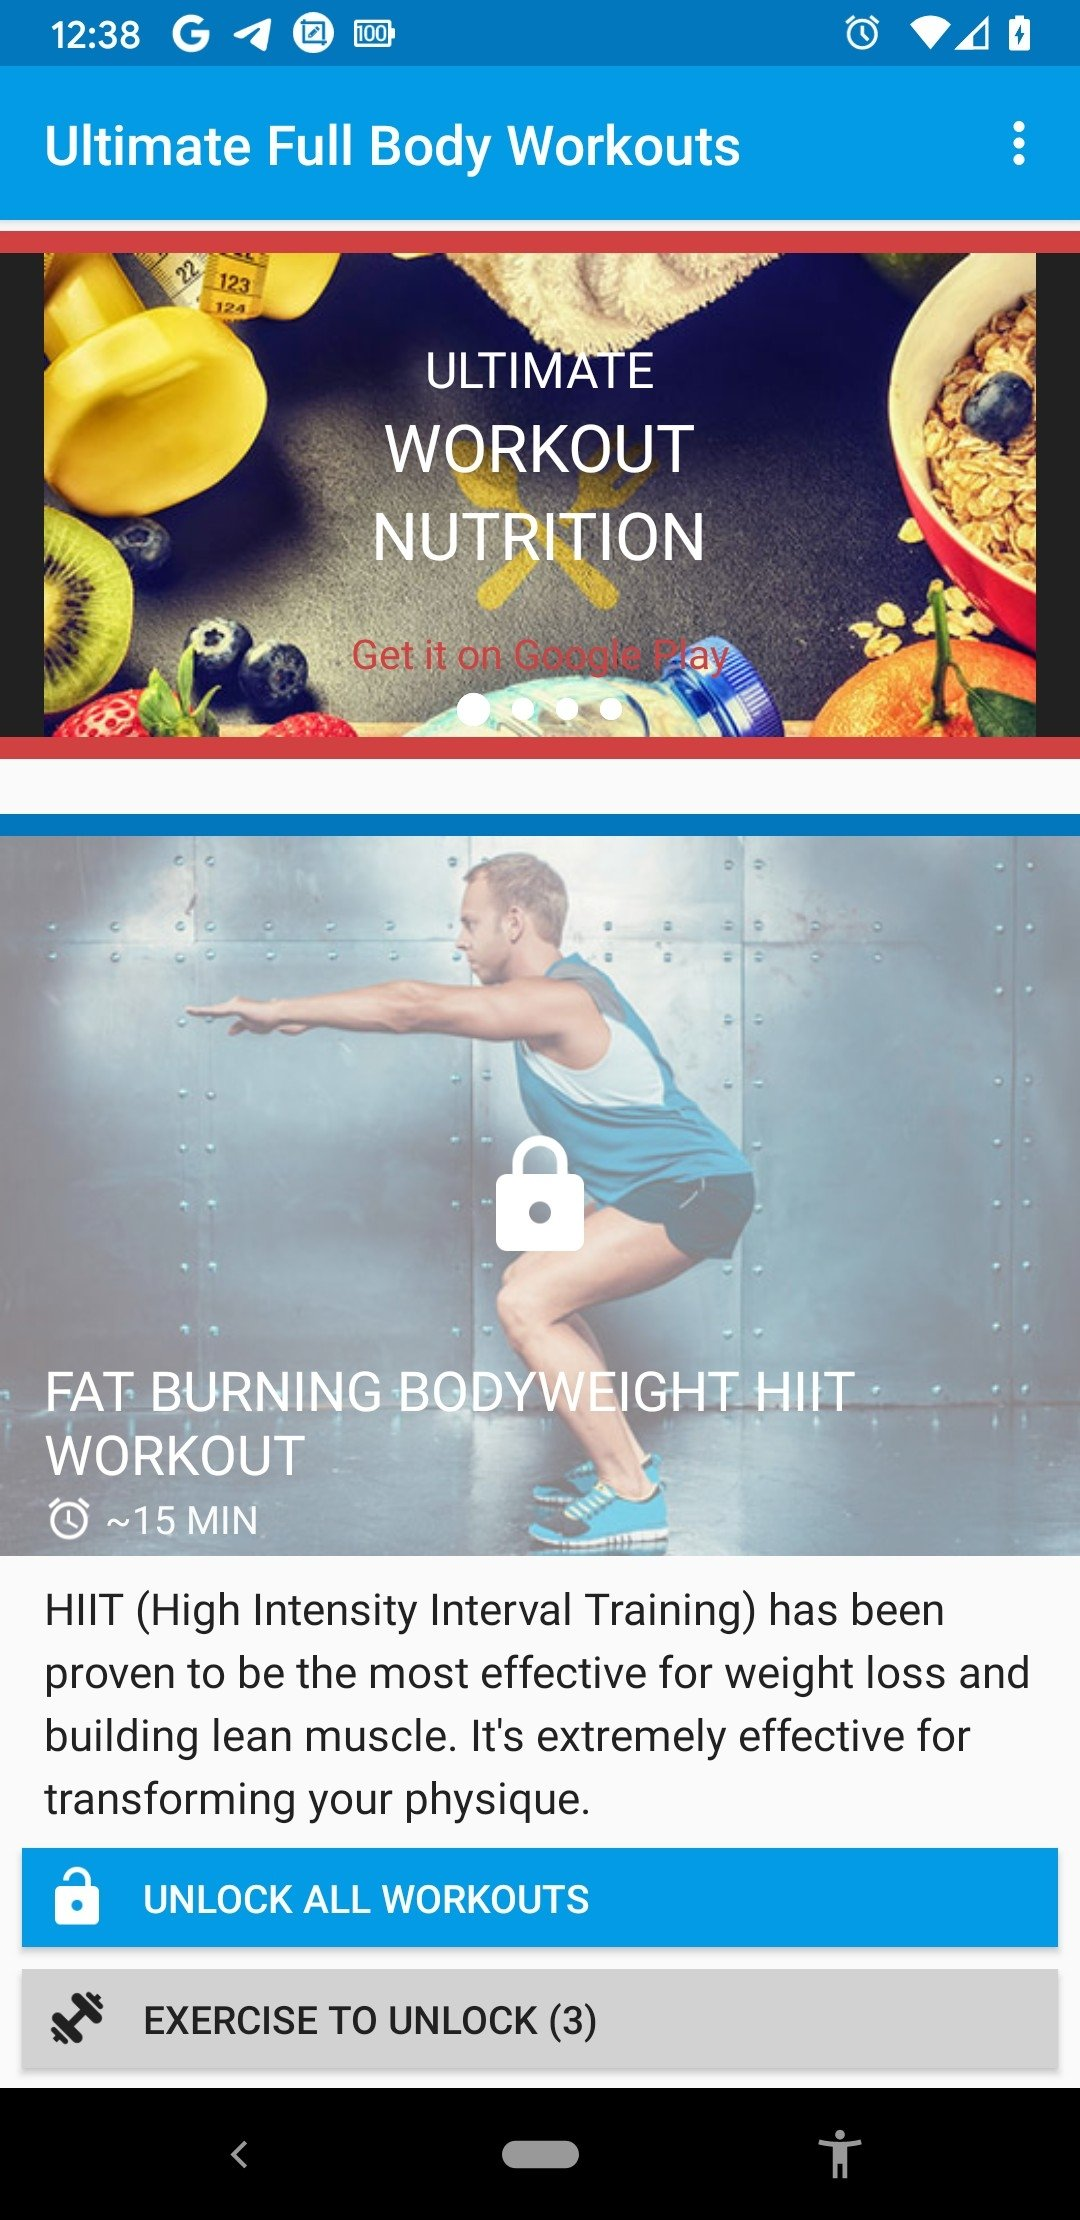 Ultimate Full Body Workouts 1 23 - Download for Android APK Free